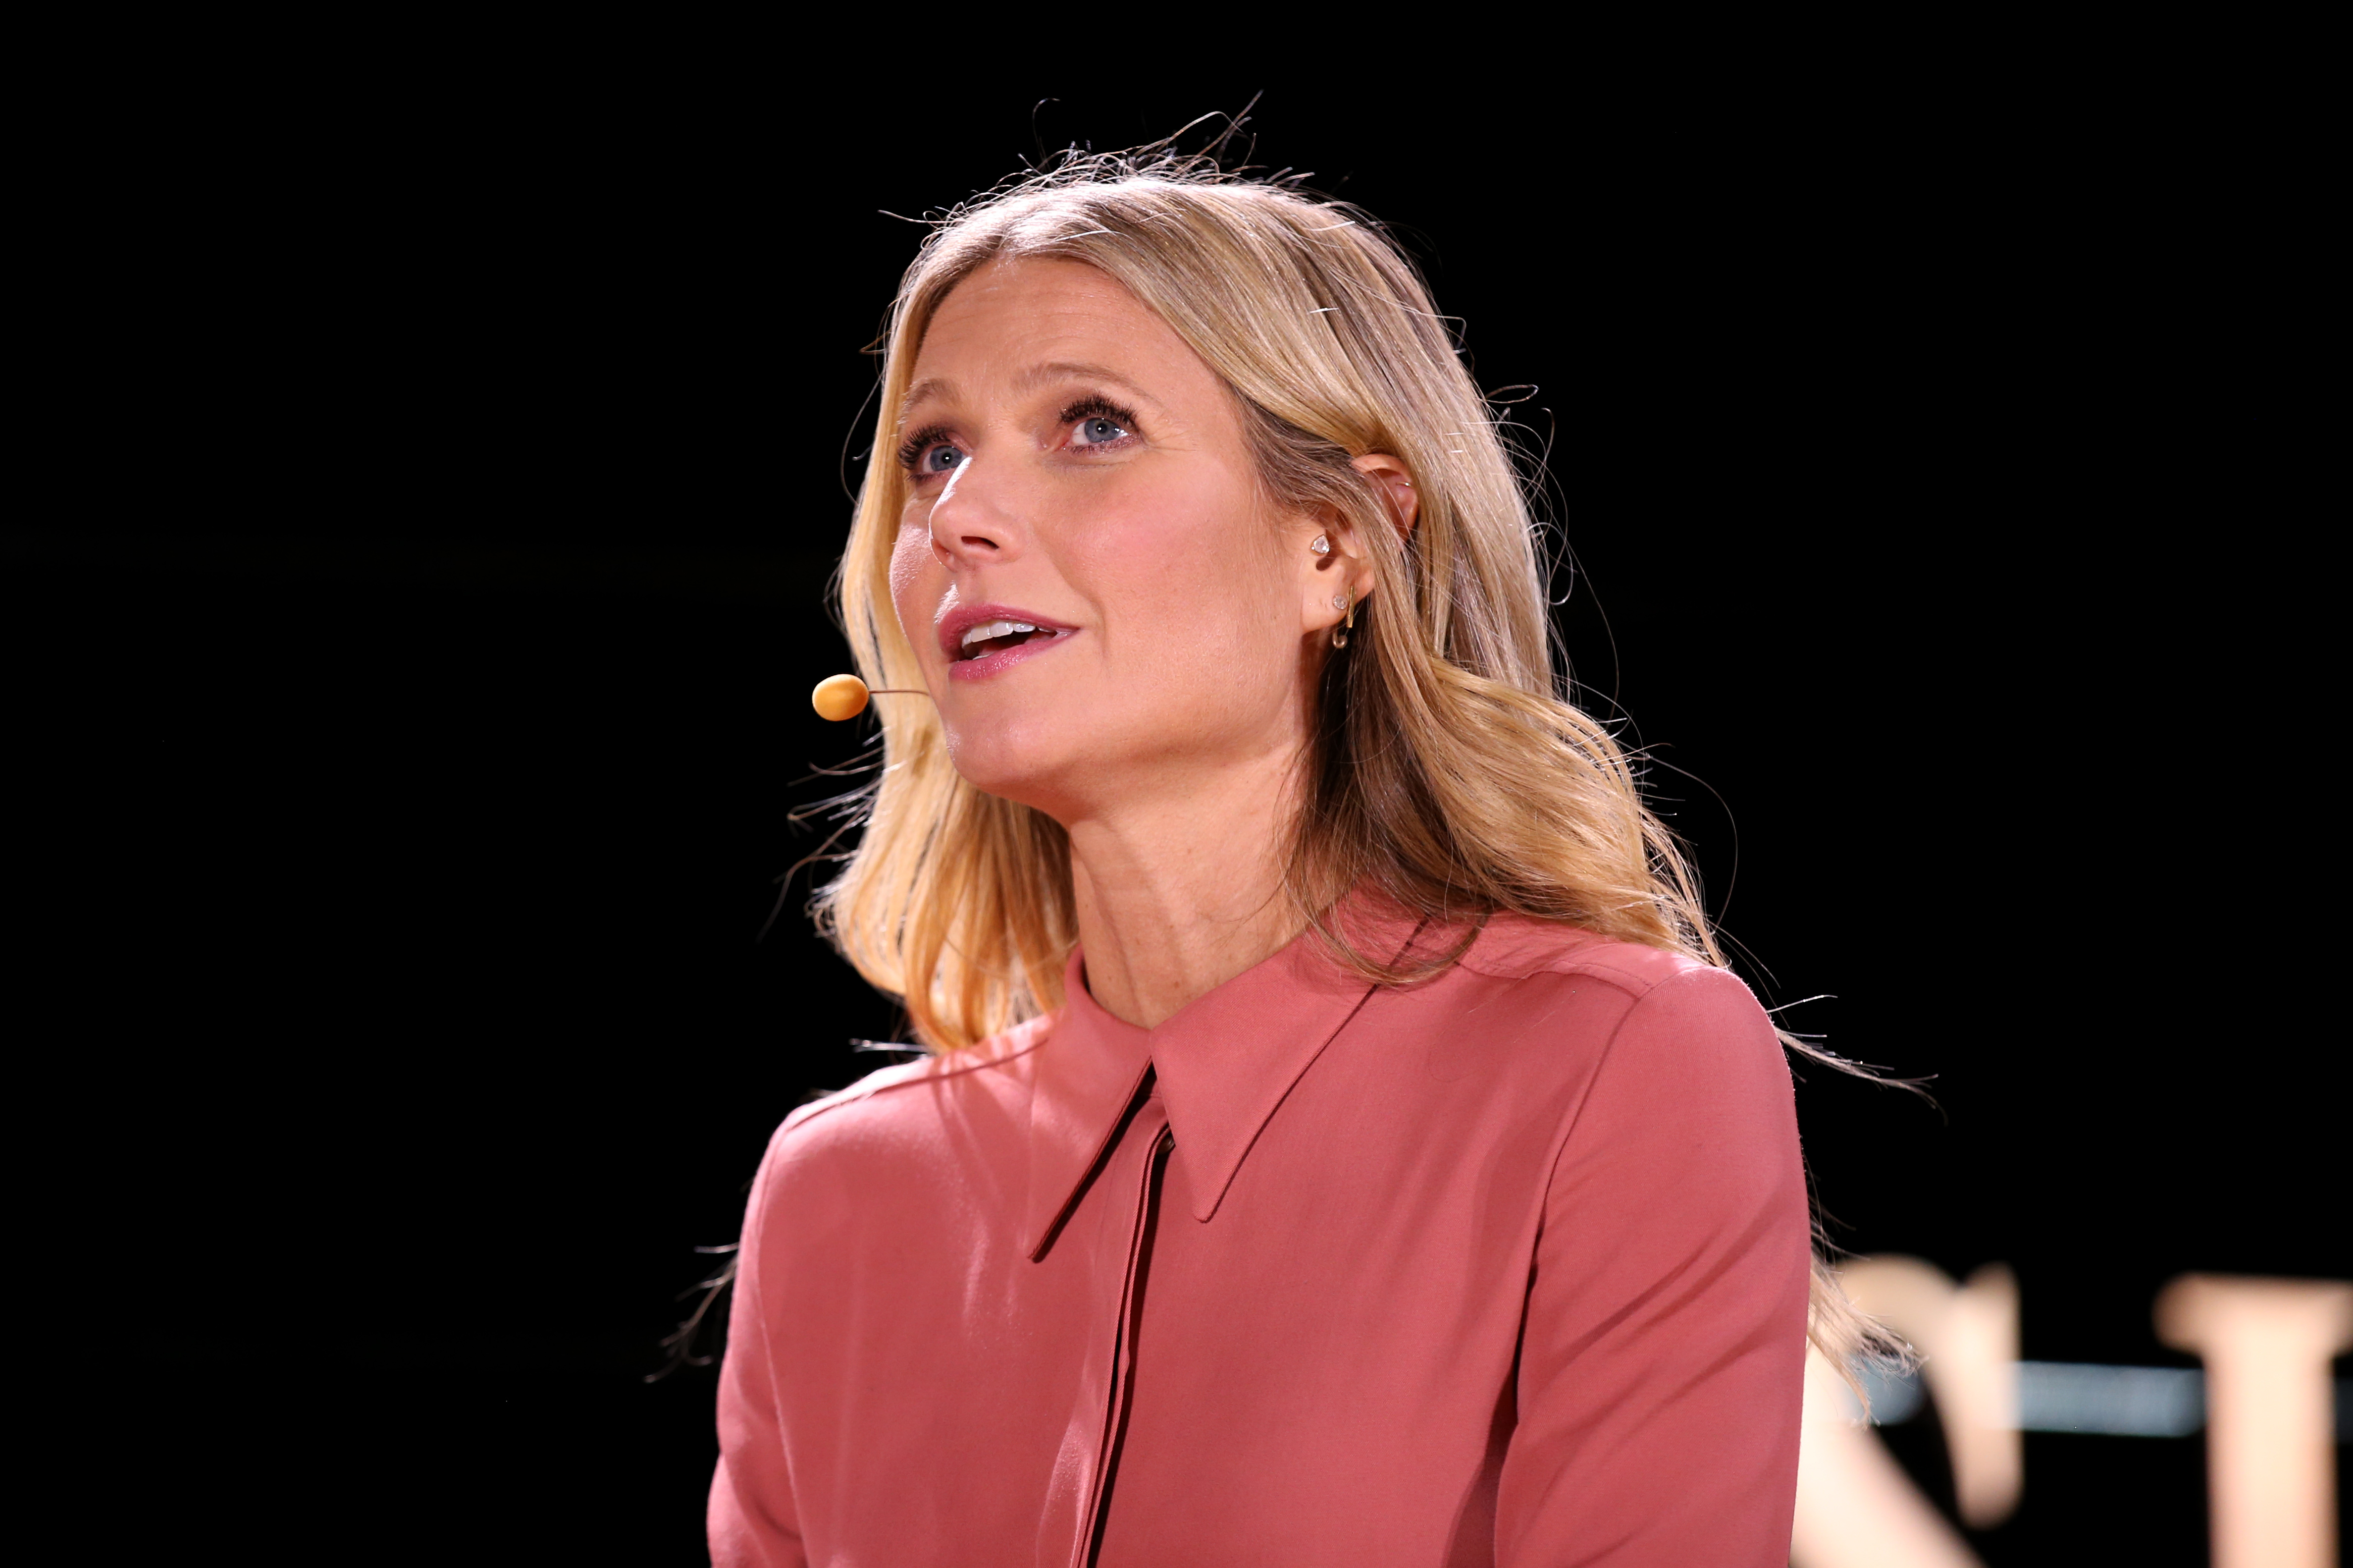 Gwyneth Paltrow onstage at a tech conference.